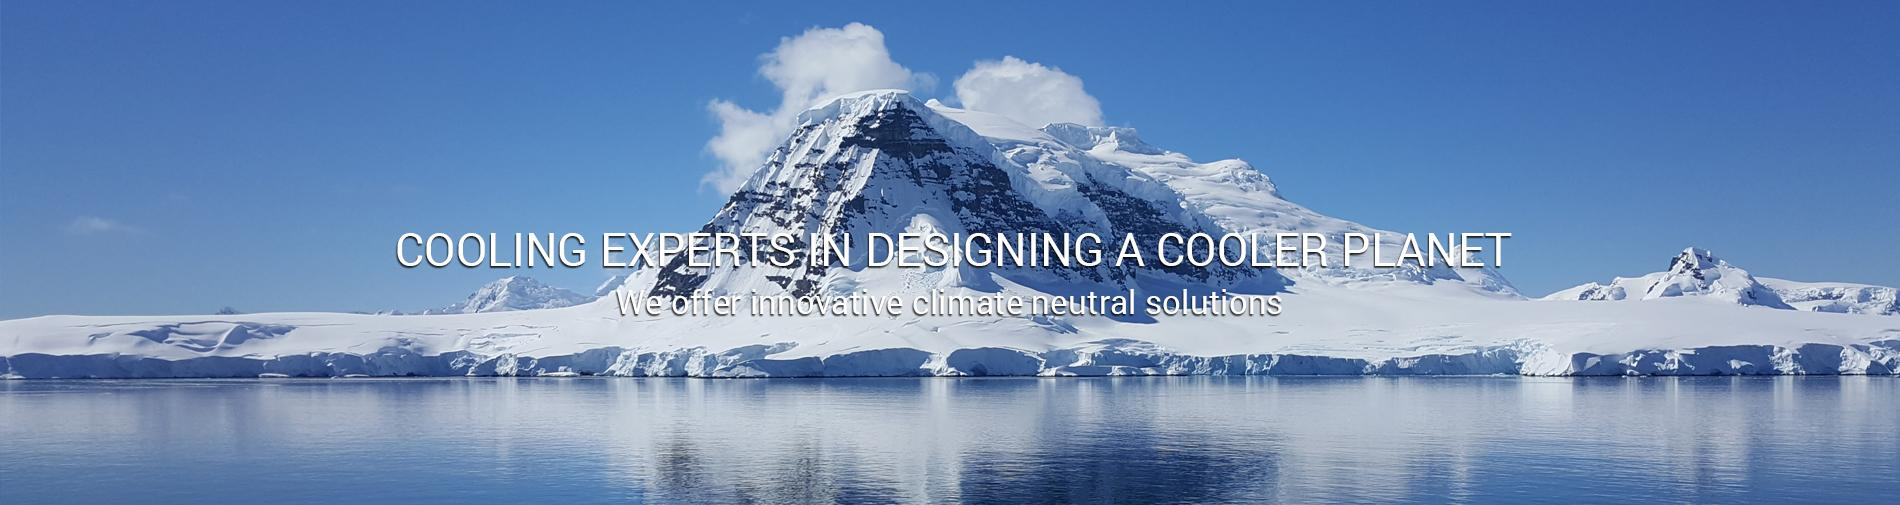 Banner EISBERG COOLING EXPERTS